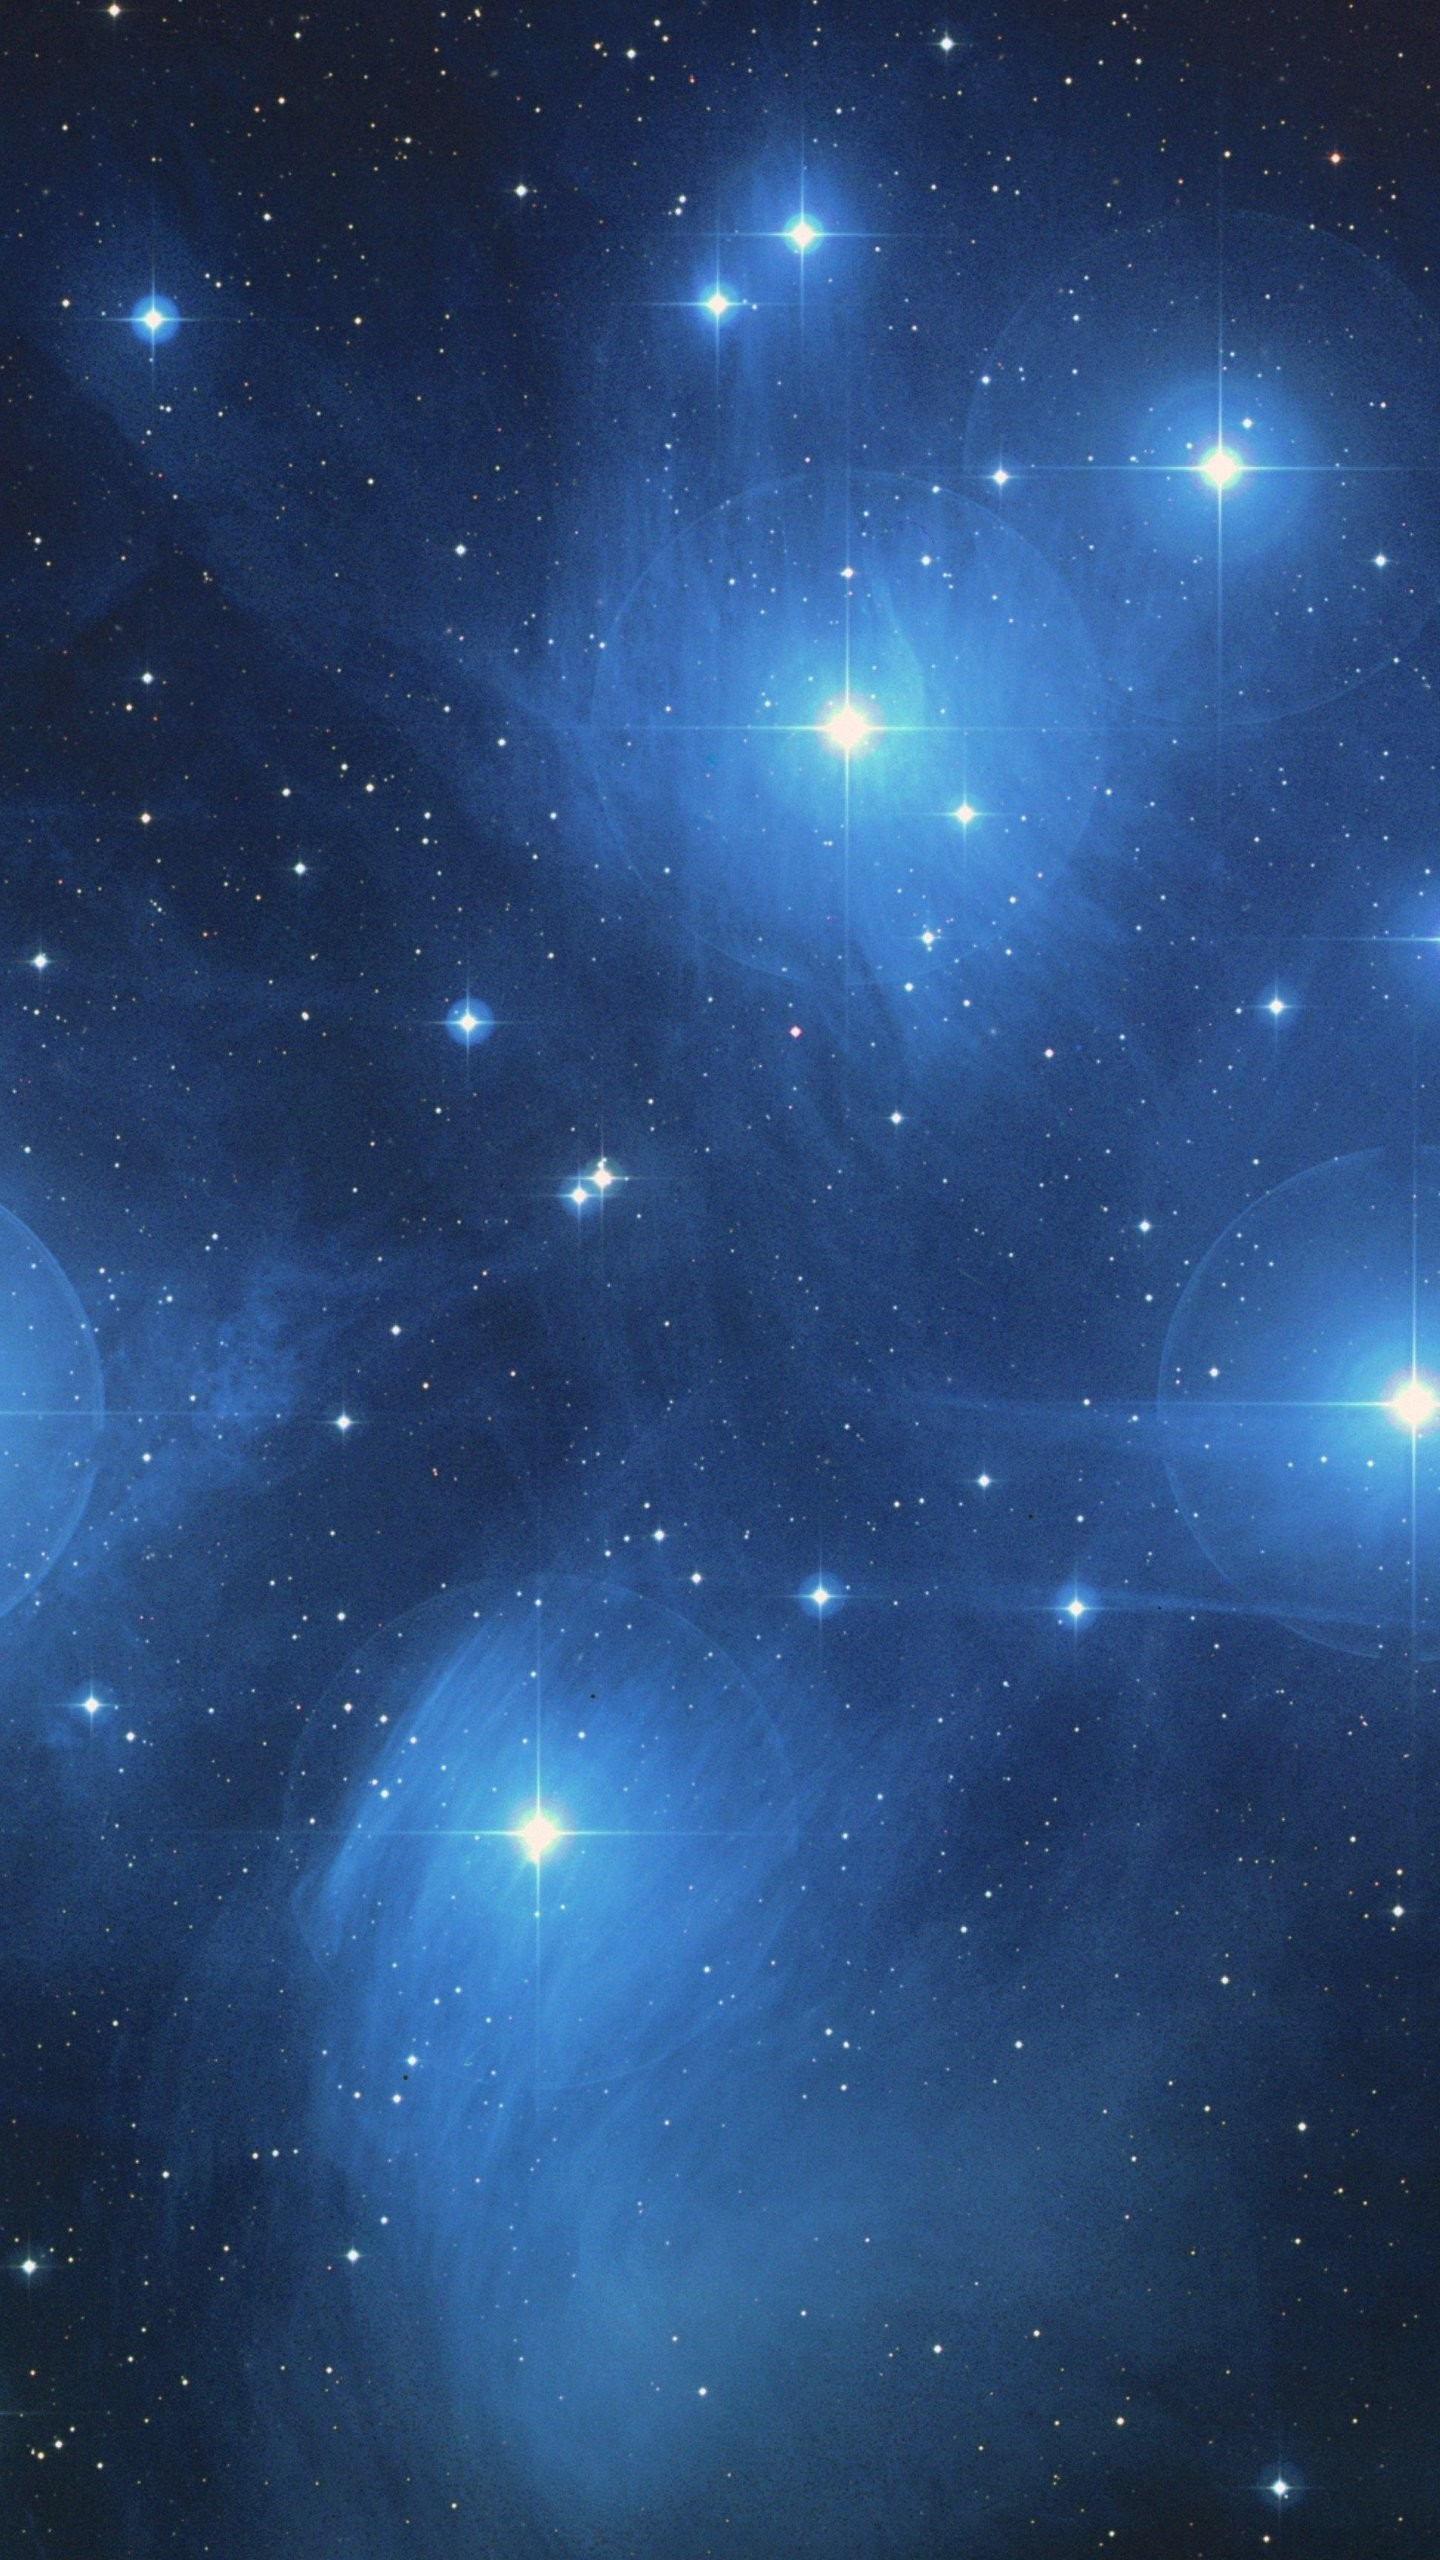 1440x2560 The Pleiades Star Cluster Wallpaper - iPhone, Android & Desktop Backgrounds